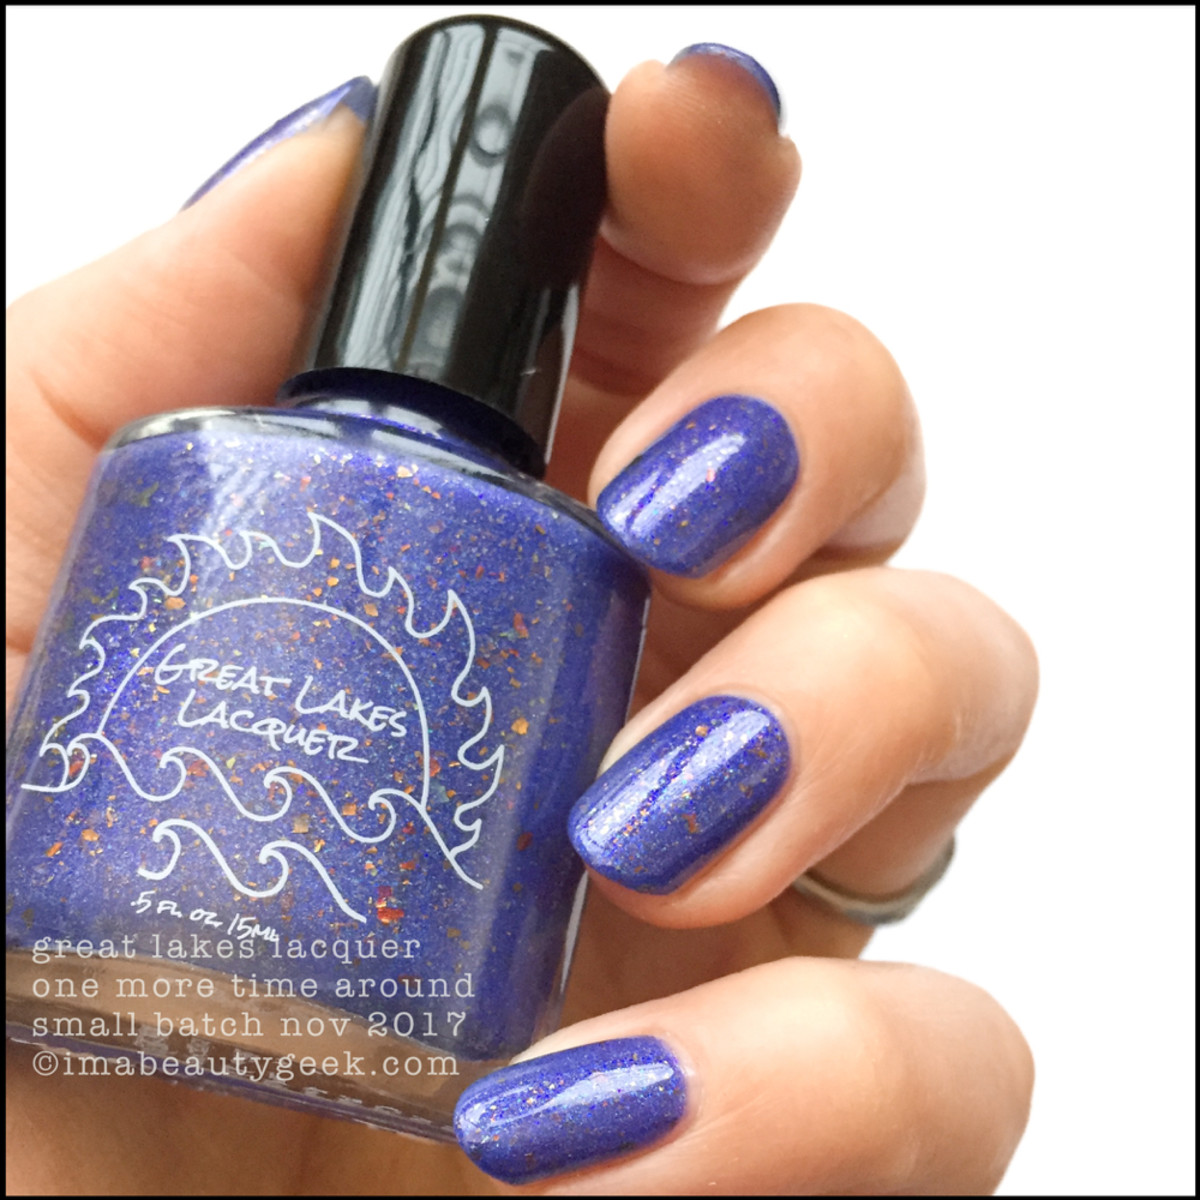 Great Lakes Lacquer One More Time Around 1 _ Great Lakes Lacquer Holiday 2017